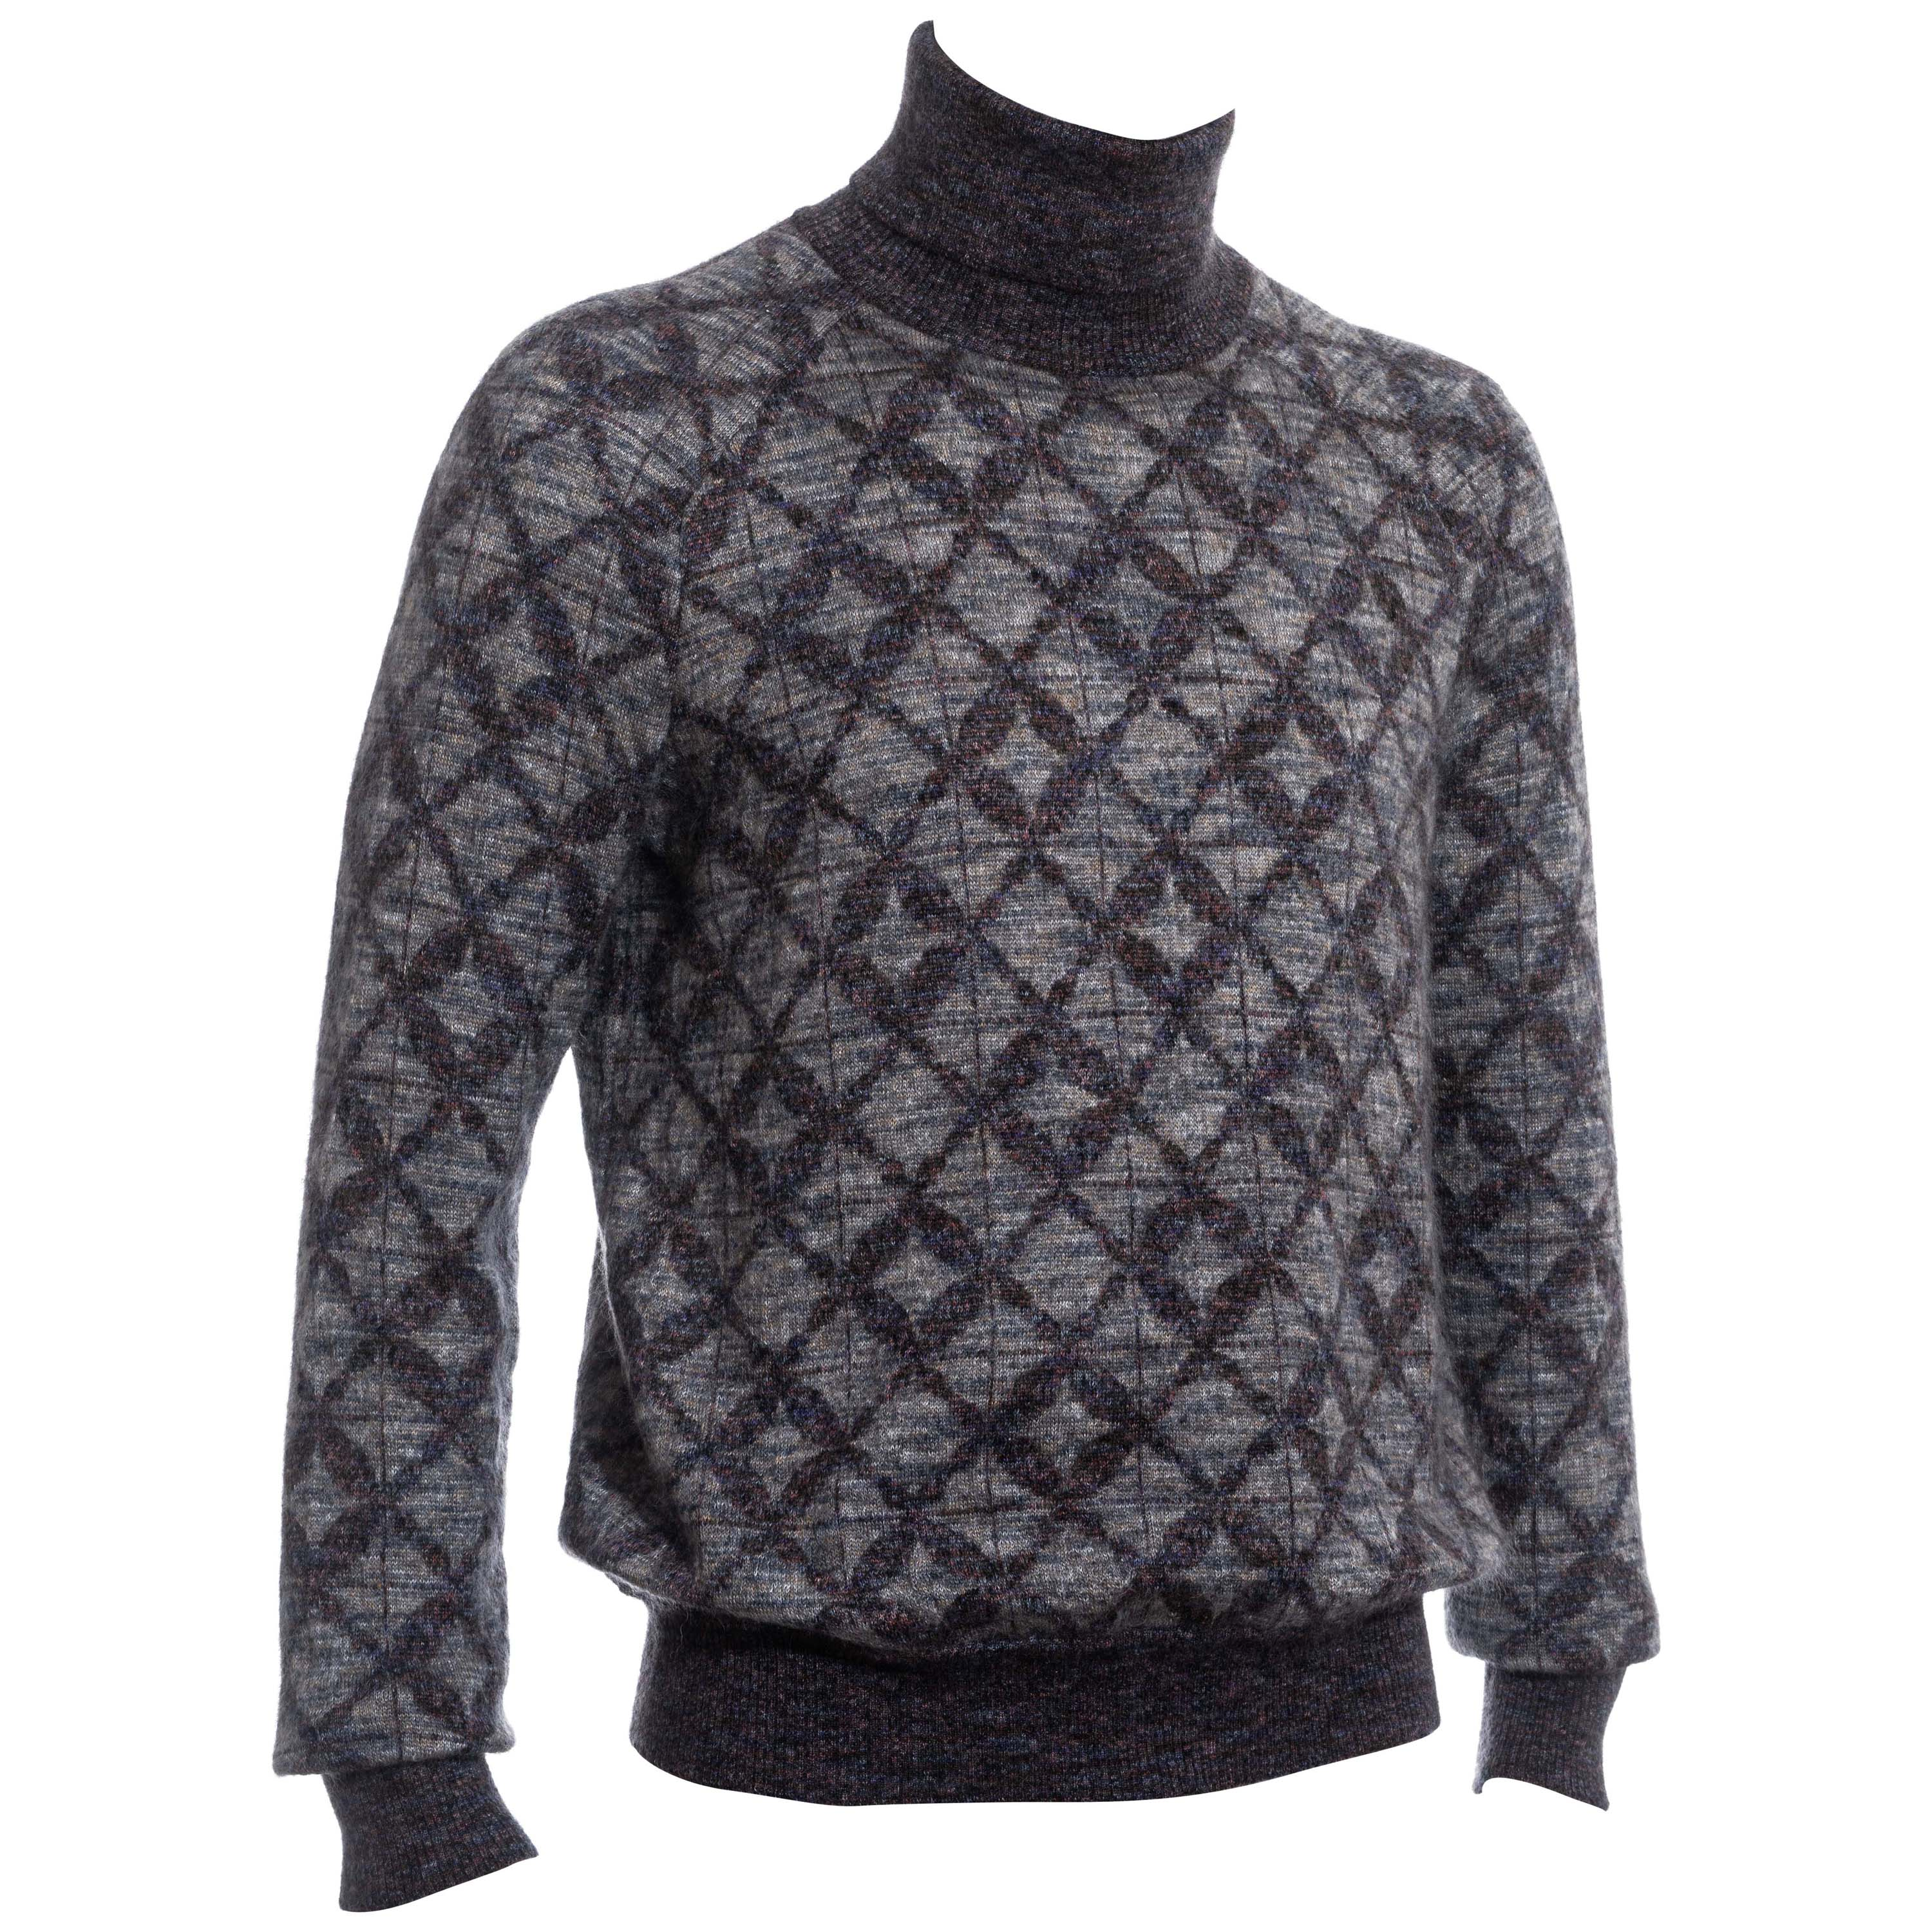 Men's Chanel multicoloured mohair and silk knitted turtle neck sweater, pf 2016